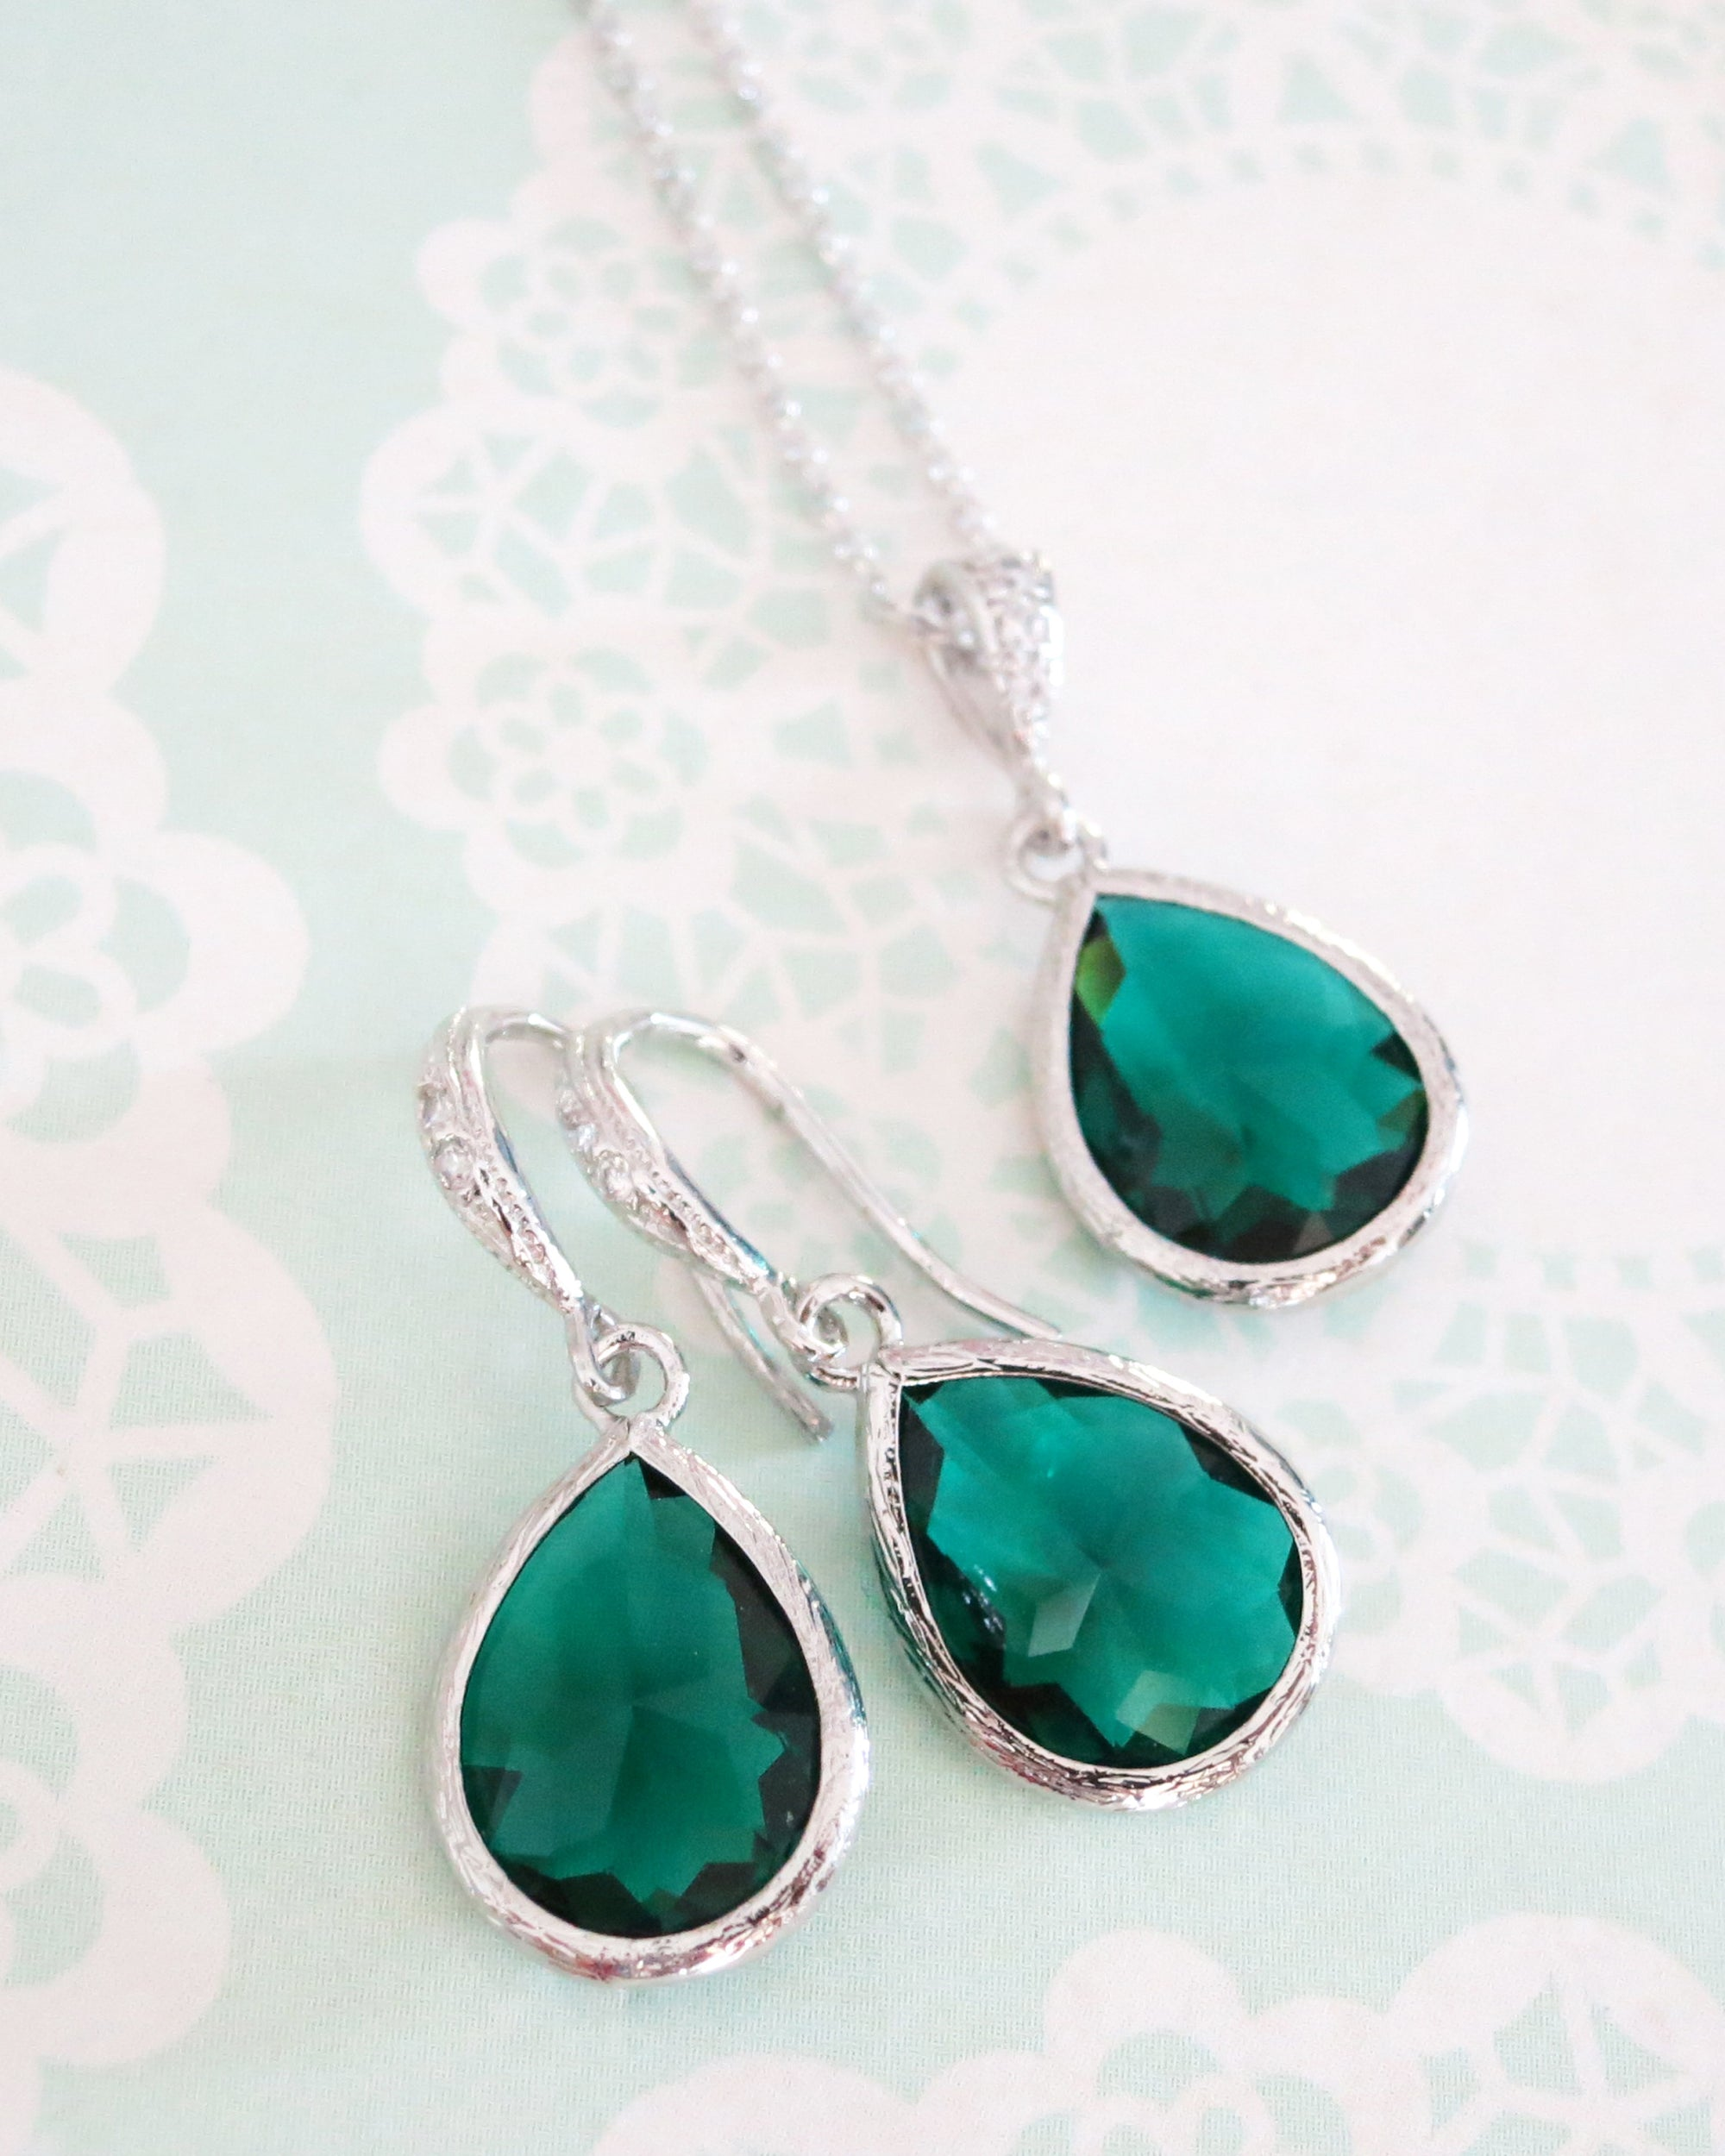 Emerald Earrings & Necklace | Special Occasion & Everyday Jewelry